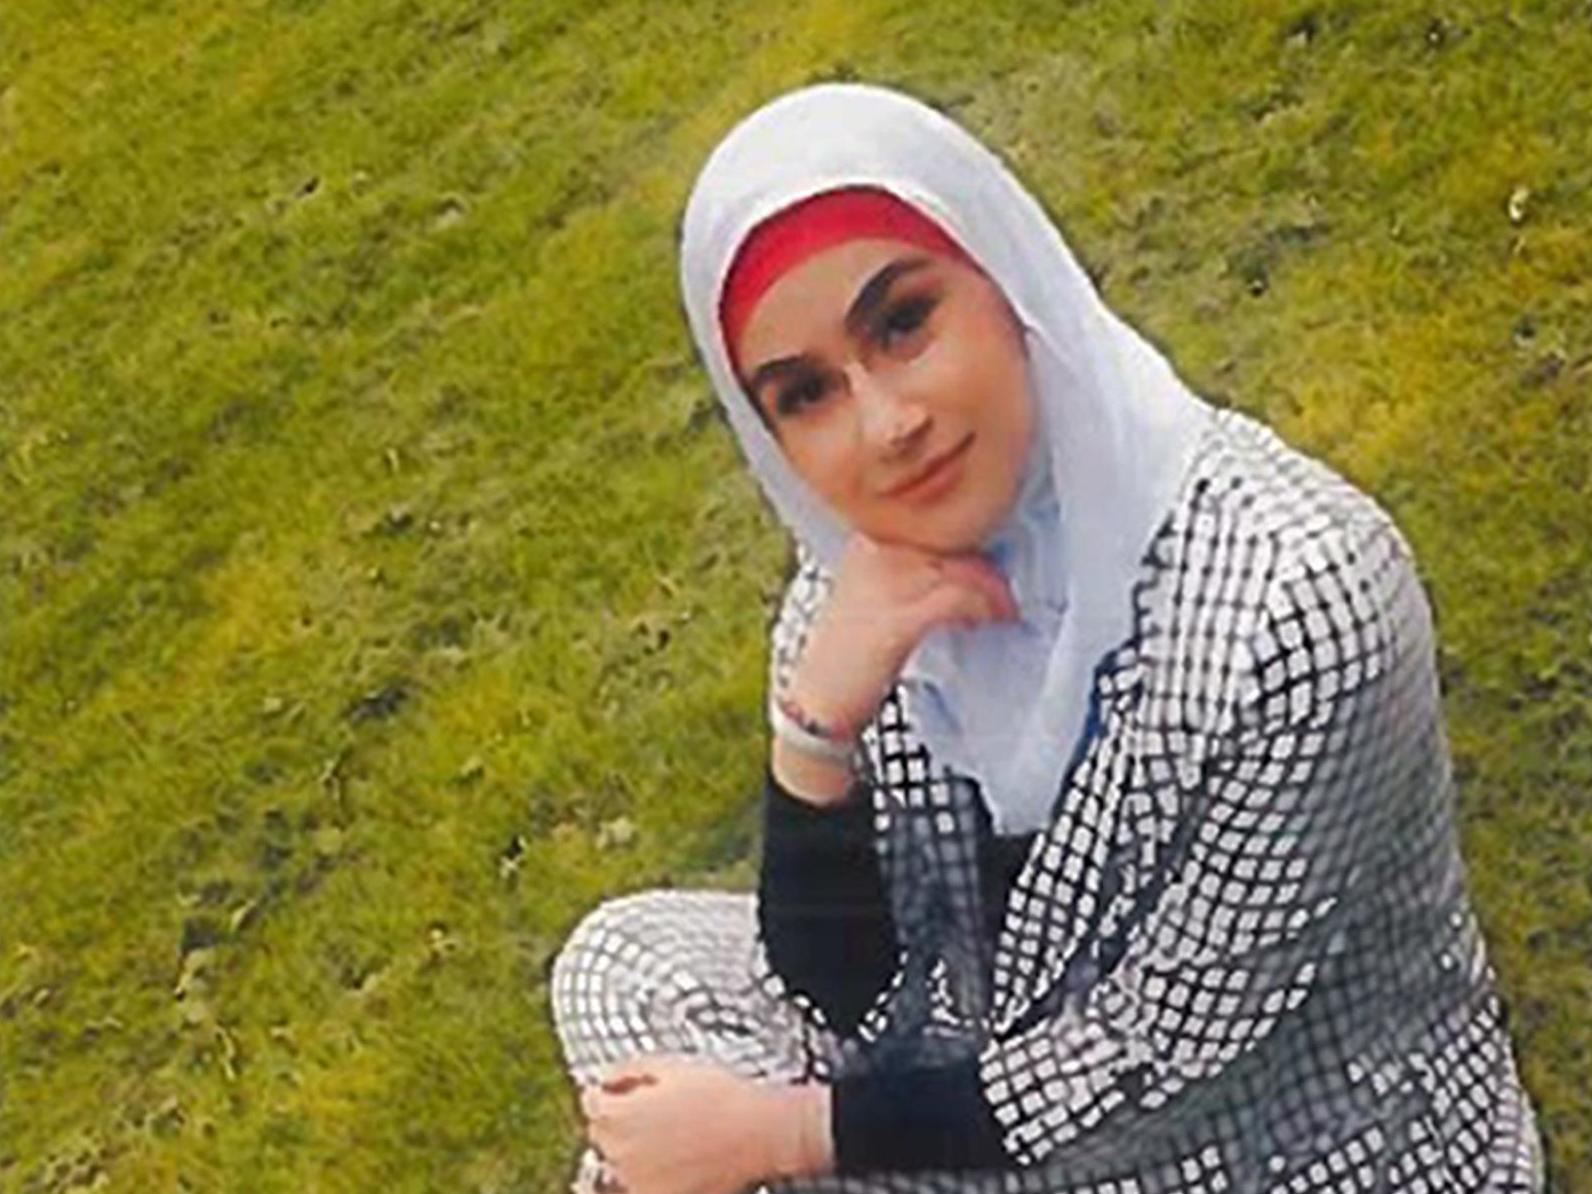 Two men charged in Blackburn murder of Aya Hachem